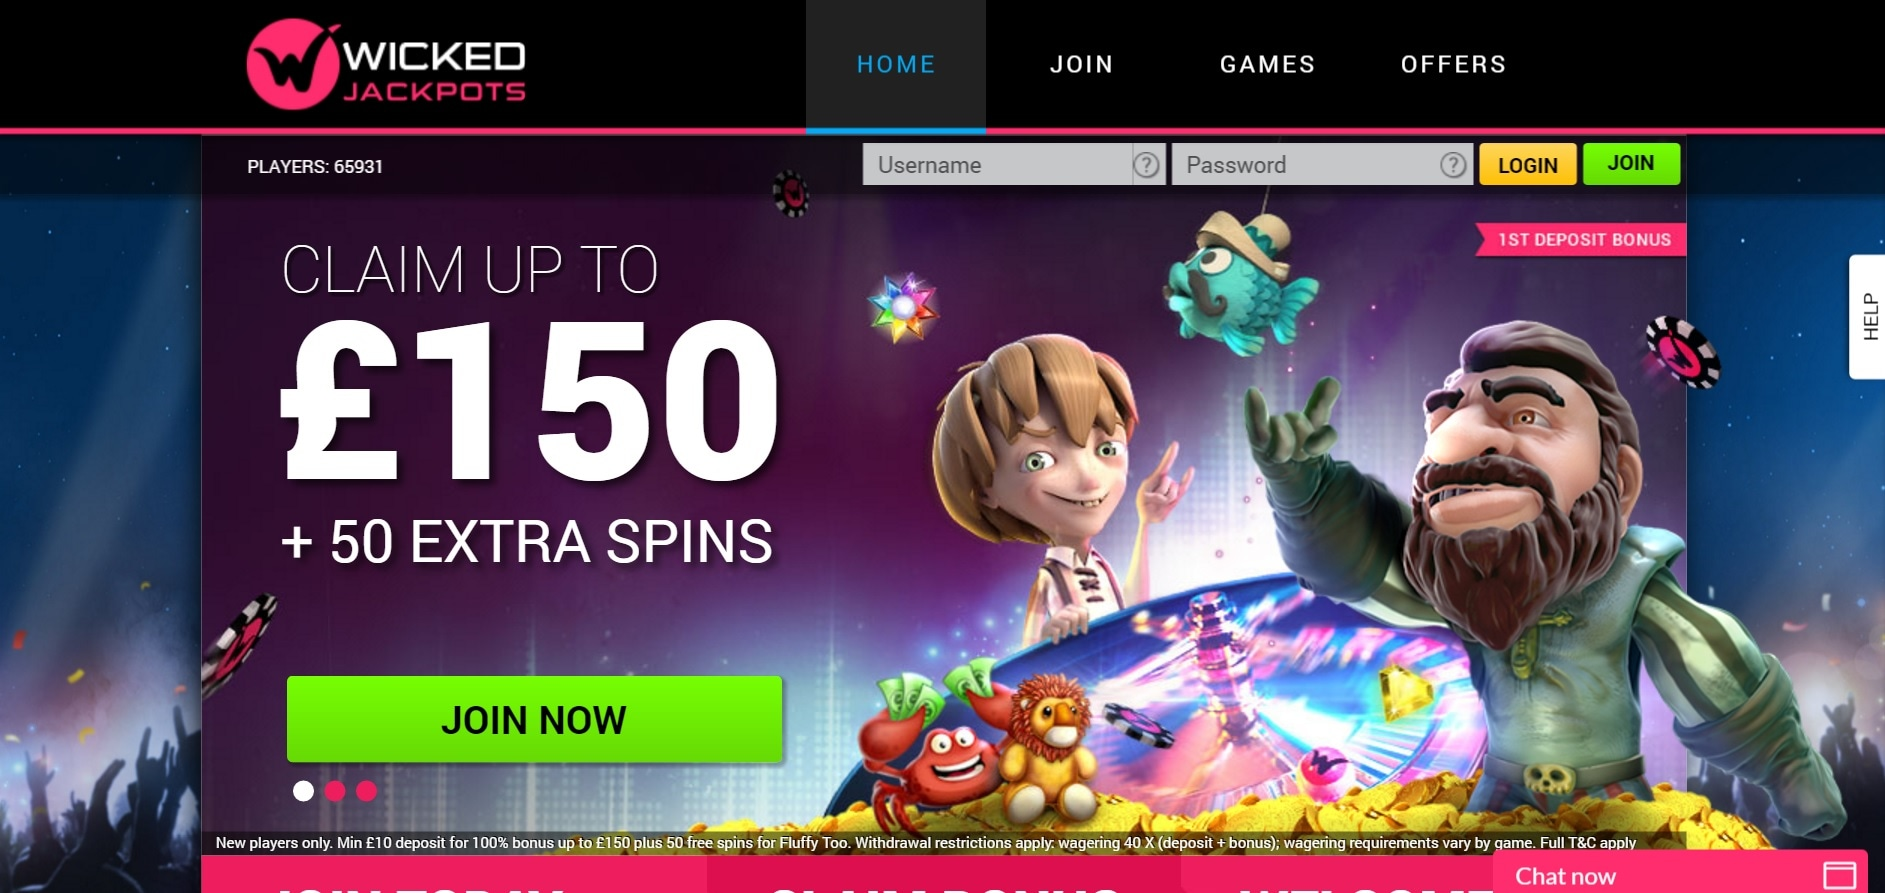 paypal casino site wicked jackpots overview